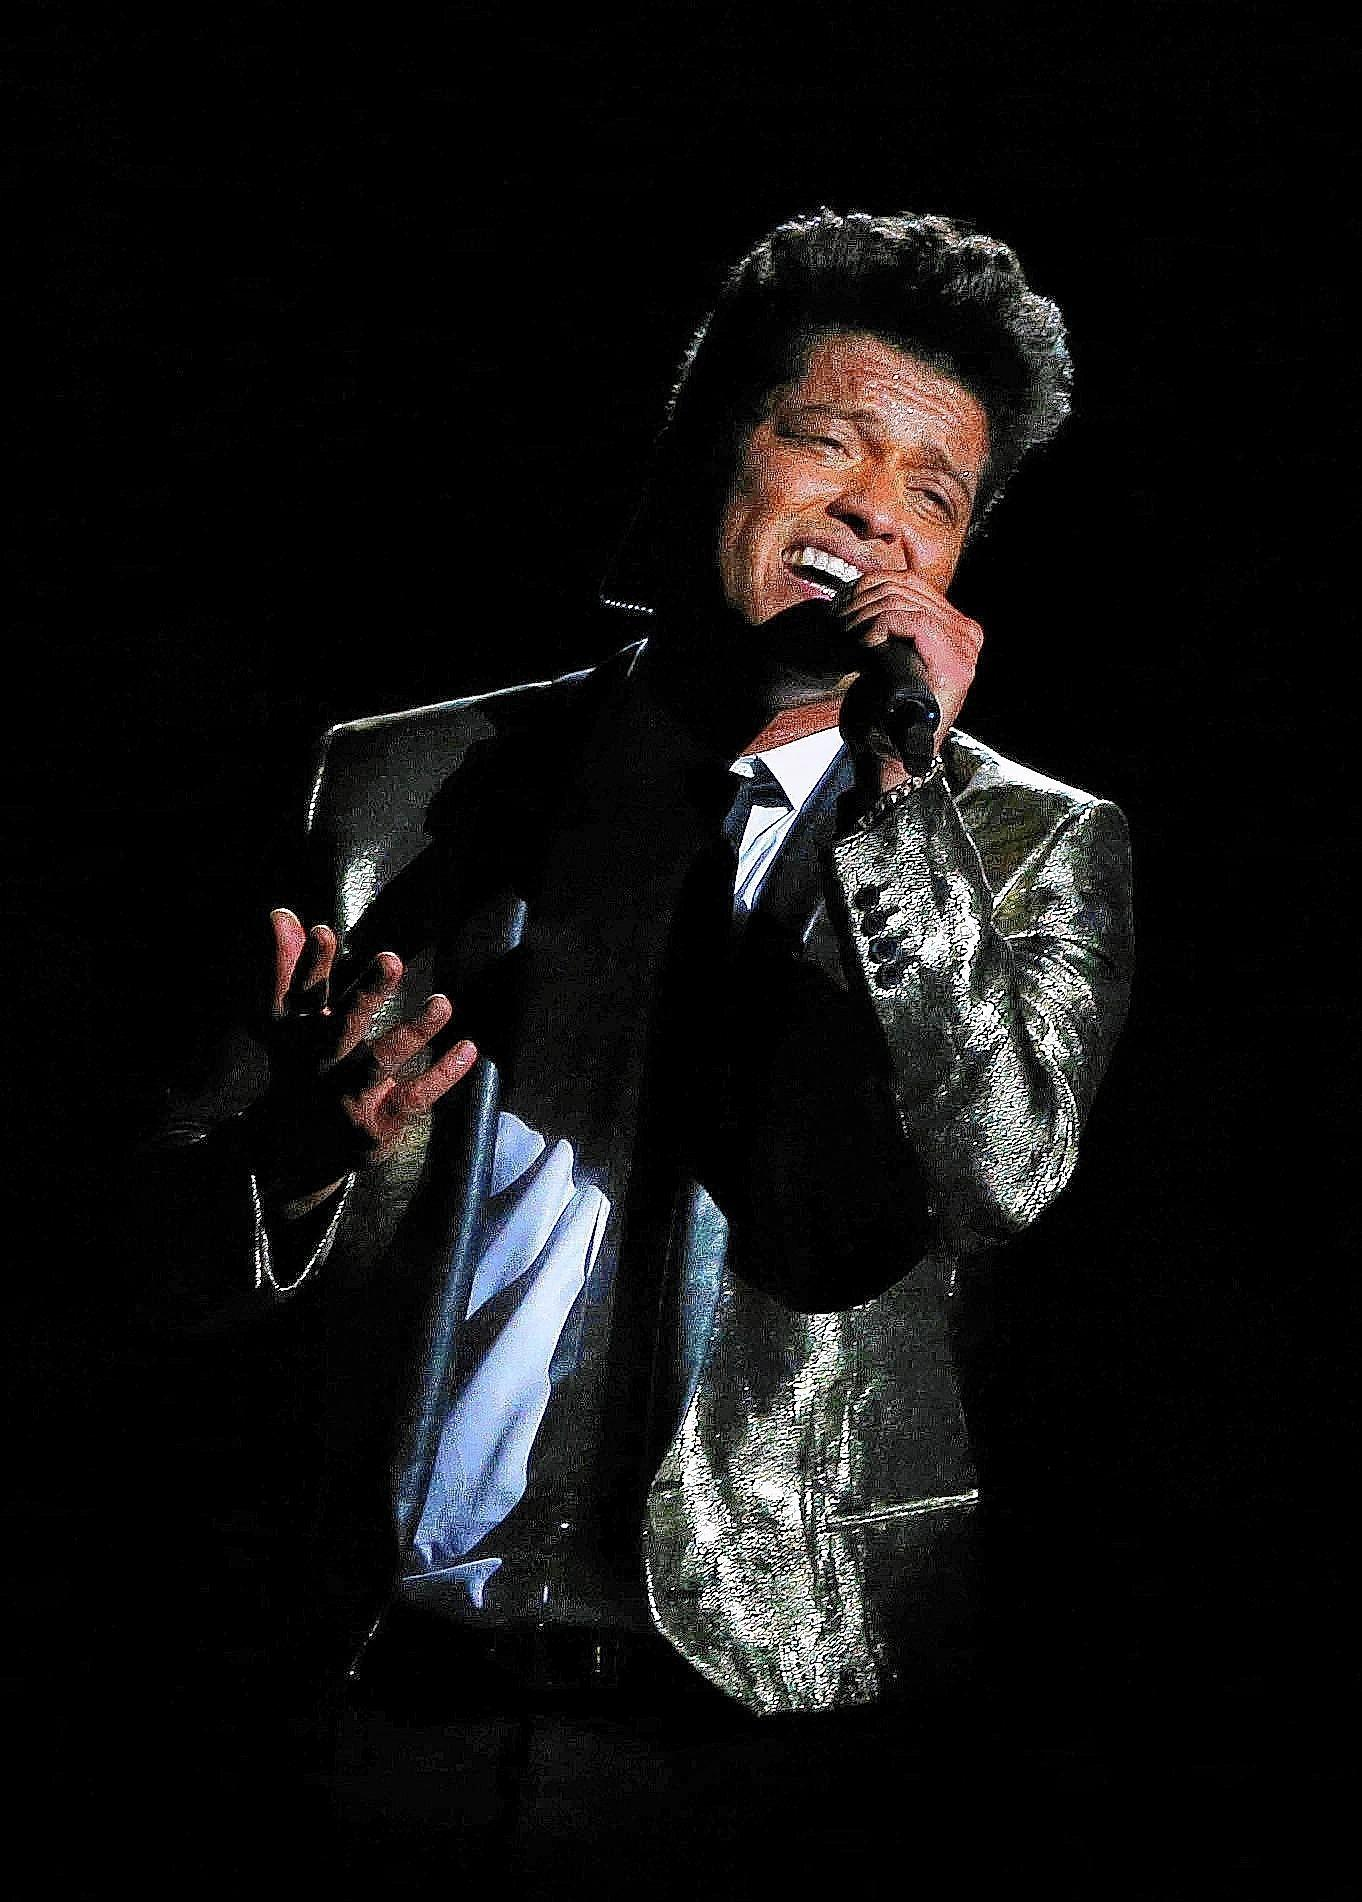 burno mars concert review bruno mars at tinley park reviewed tribunedigital chicagotribune. Black Bedroom Furniture Sets. Home Design Ideas